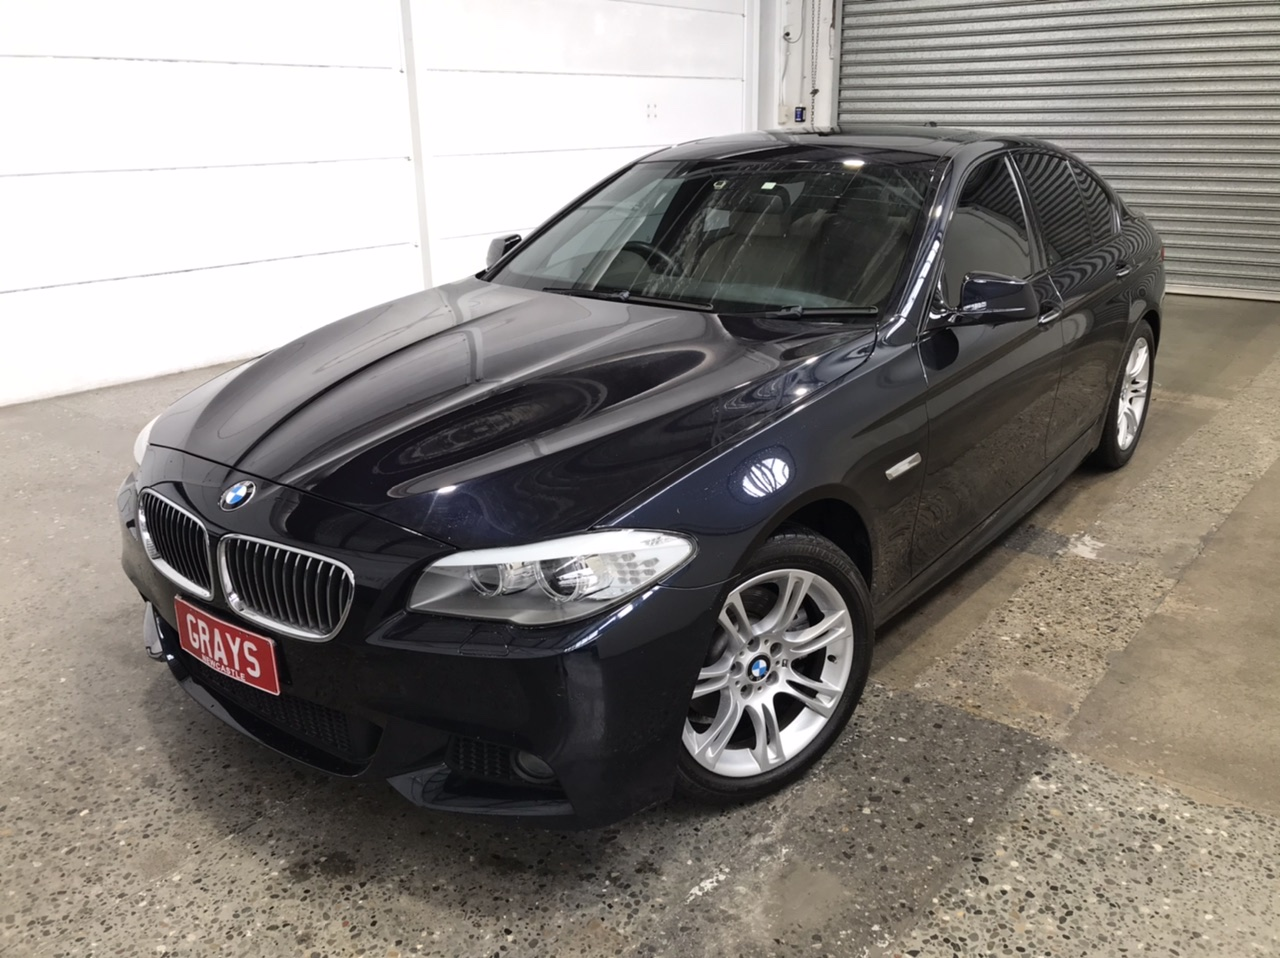 2011 BMW 5 28i F10 Automatic - 8 Speed Sedan